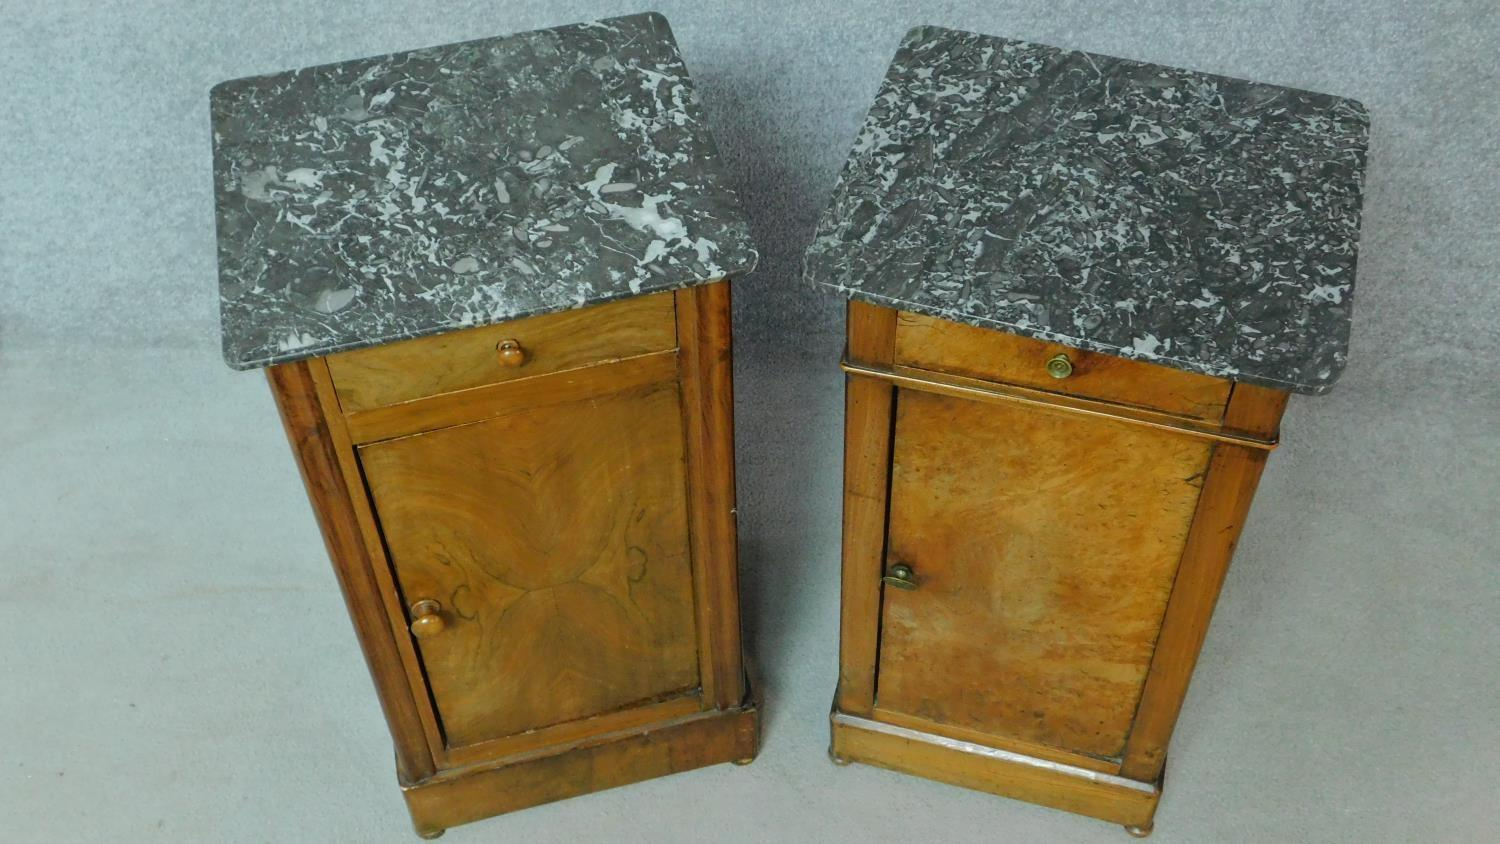 A near pair of 19th century Continental walnut bedside cabinets with grey veined marble tops and - Image 5 of 5